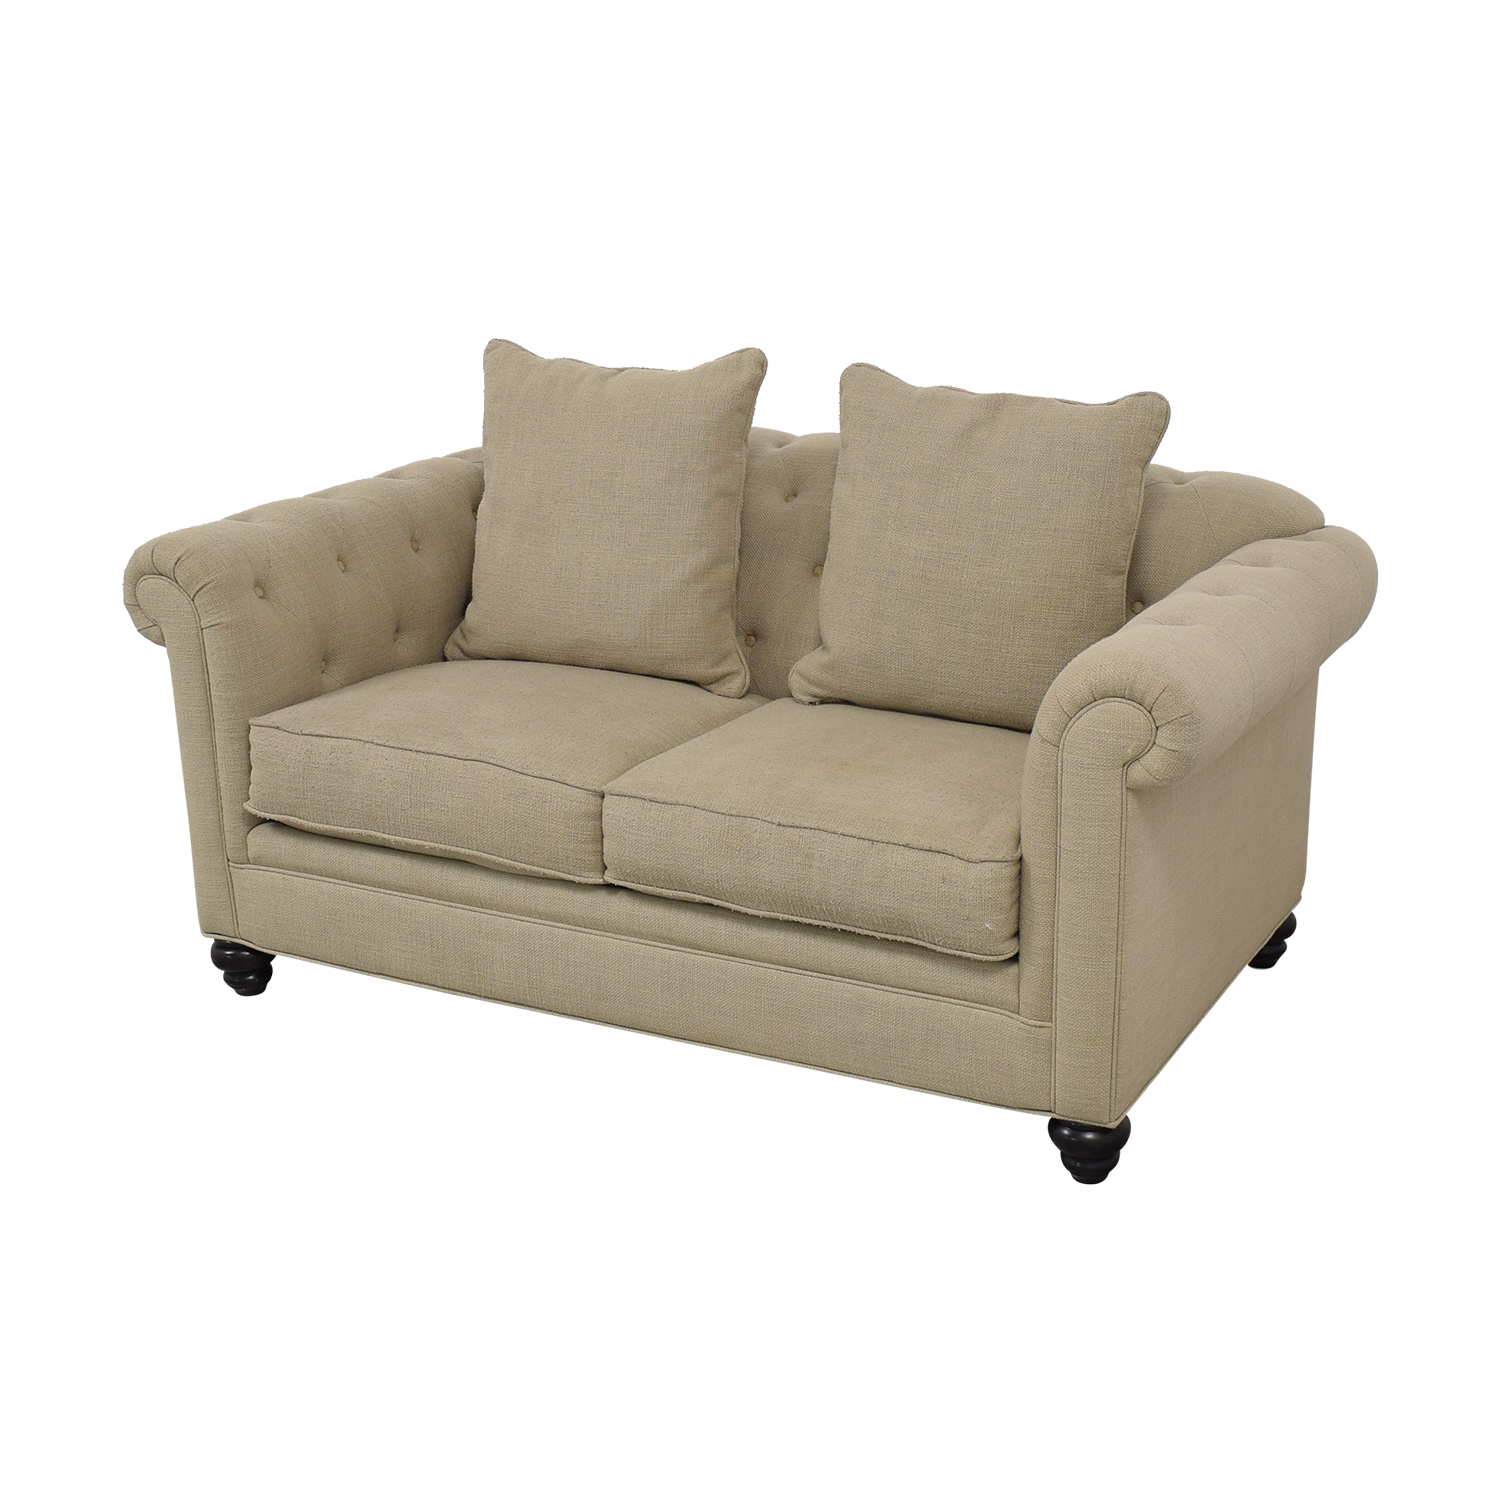 Jonathan Louis Jonathan Louis Cambridge Loveseat